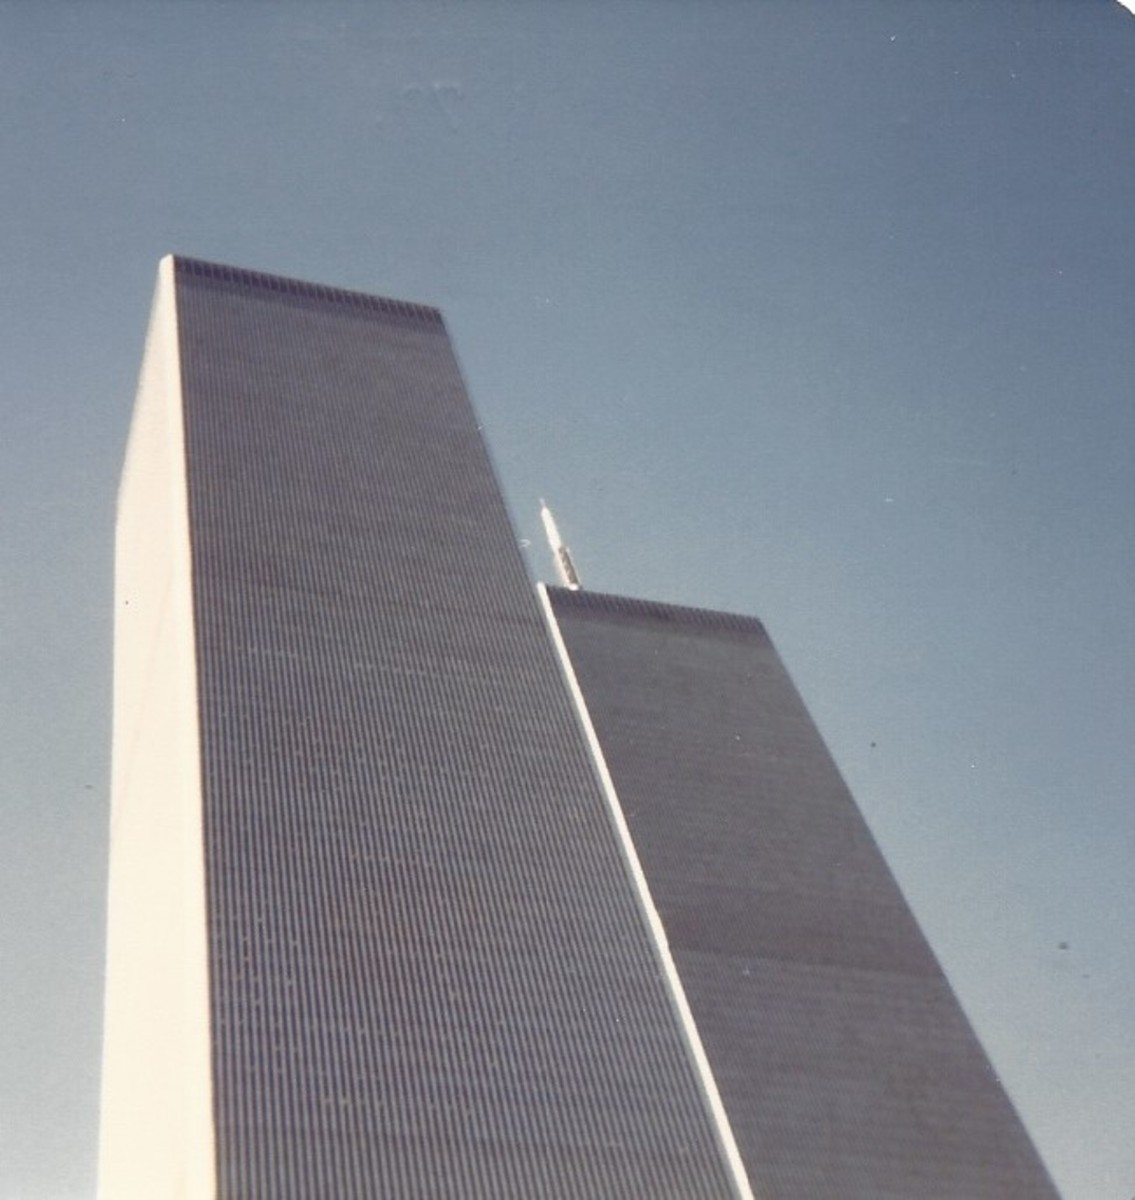 The Twin Towers, December 1979.